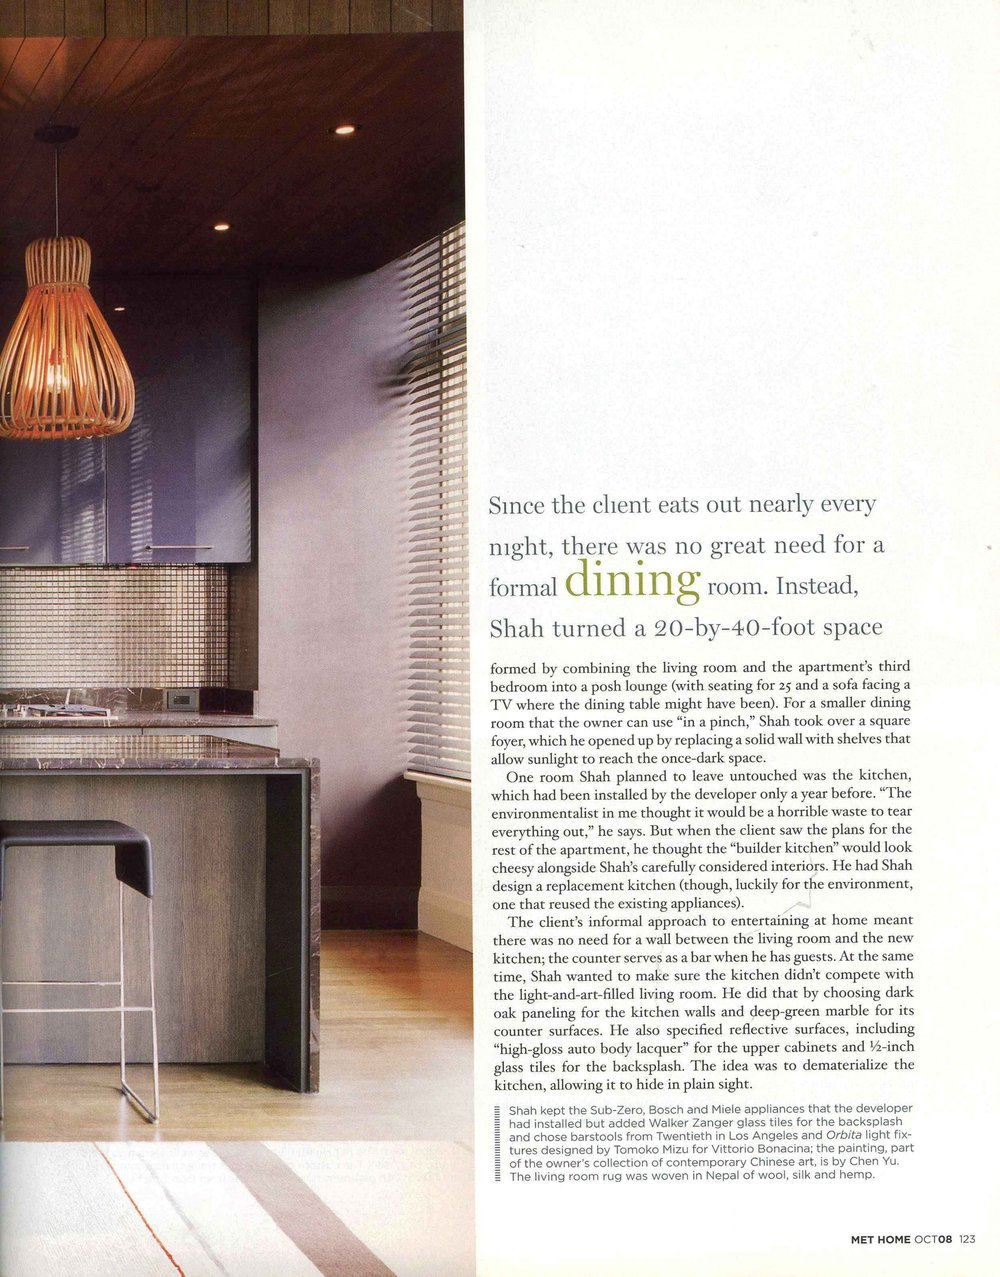 Met Home_Oct 08_Full Article 2_Page_07.jpg